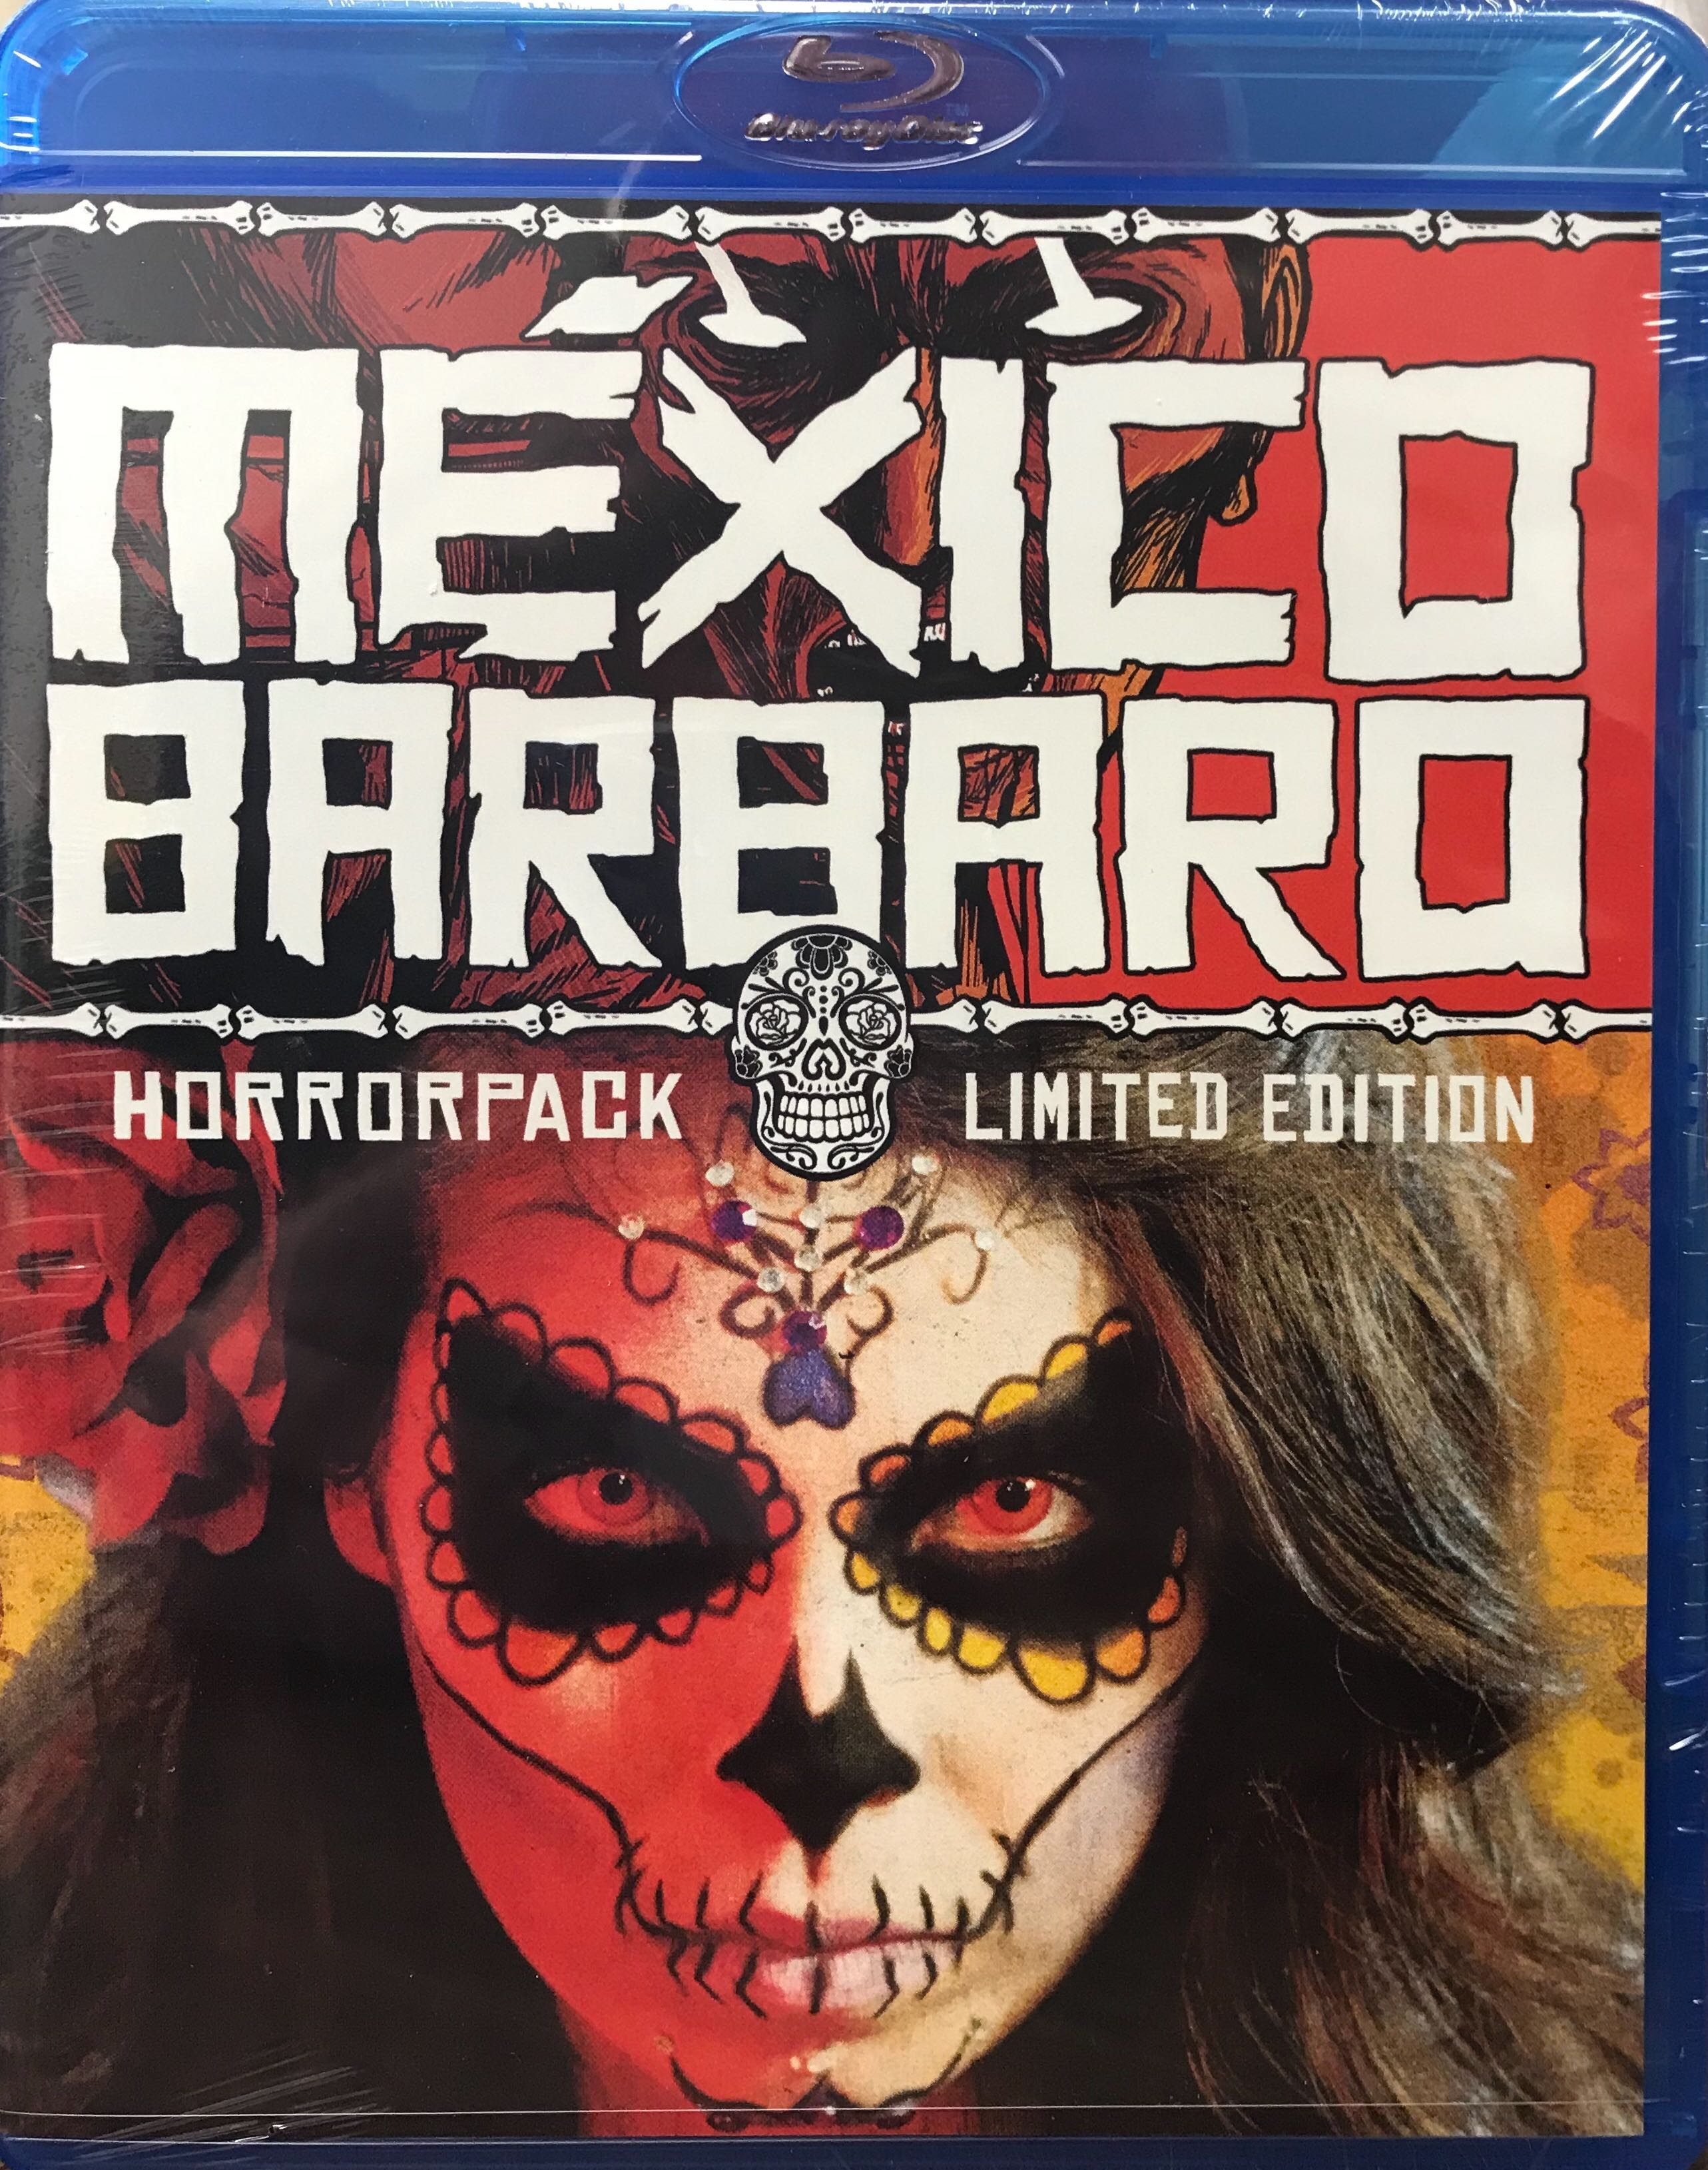 Mexico Barbaro - HorrorPack Limited Edition Blu-ray #26